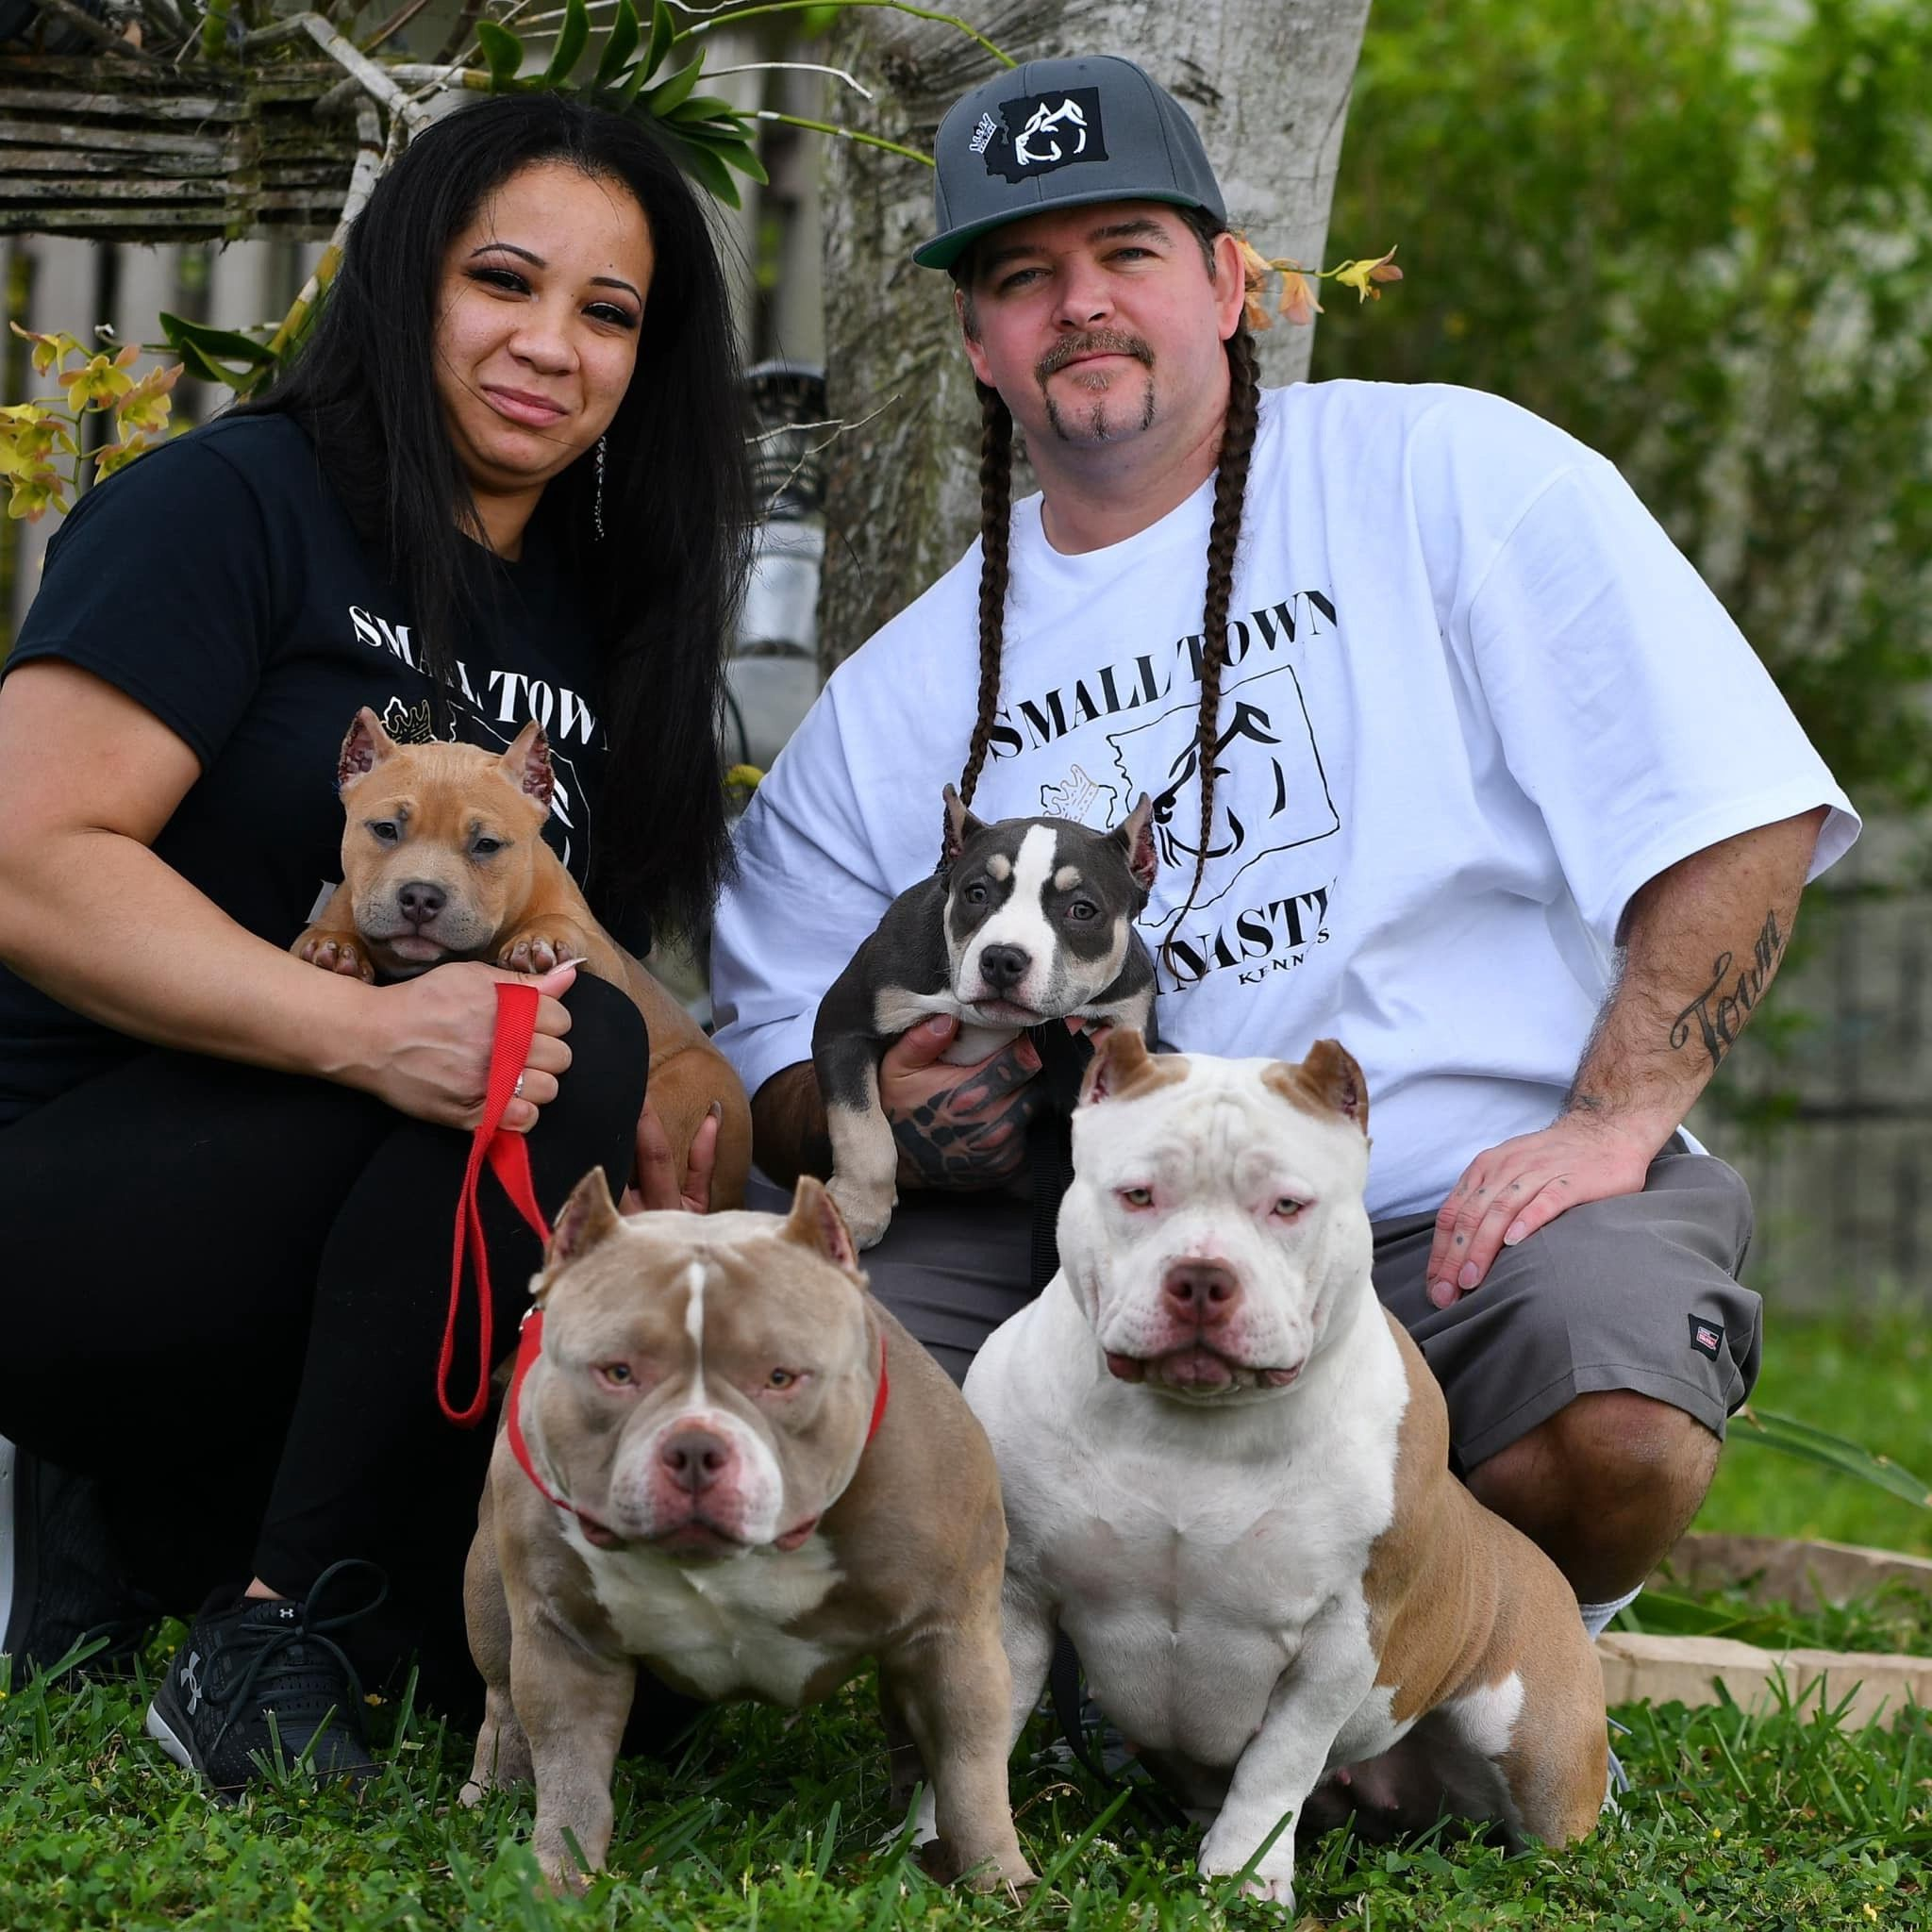 American Bully Breedings The Best Pocket Bully Puppies For Sale In 2020 American Bully Pocket Bully Puppies For Sale